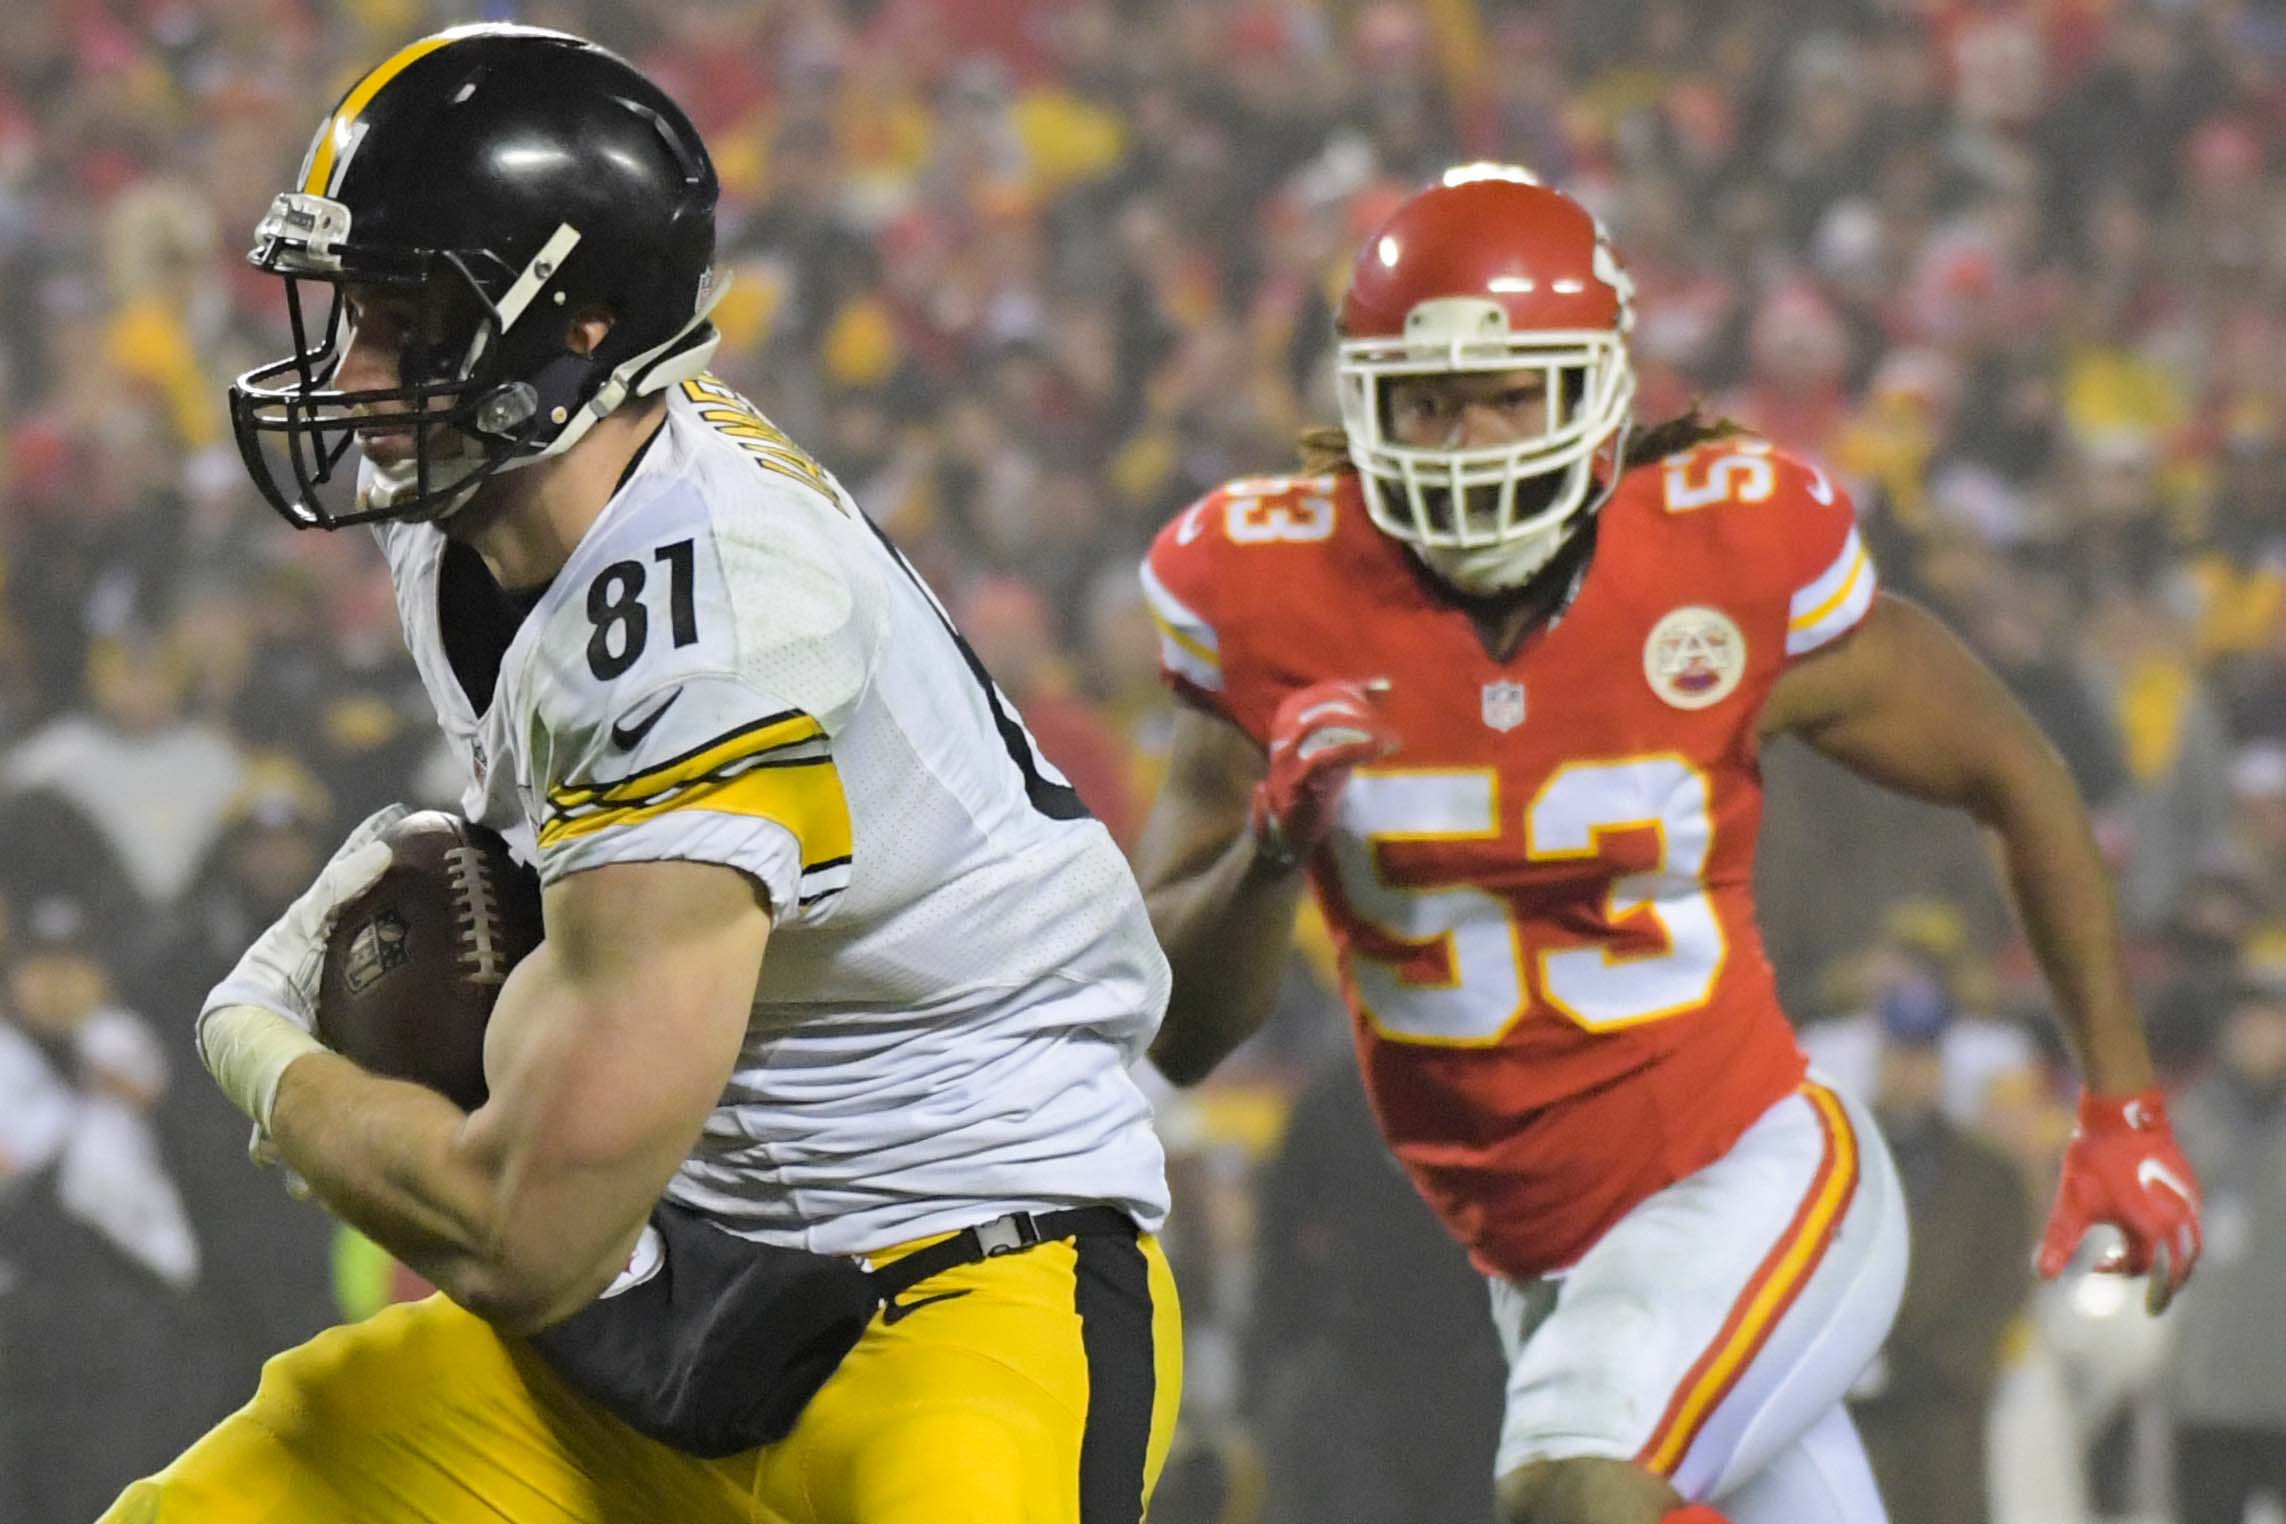 9813049-nfl-afc-divisional-pittsburgh-steelers-at-kansas-city-chiefs